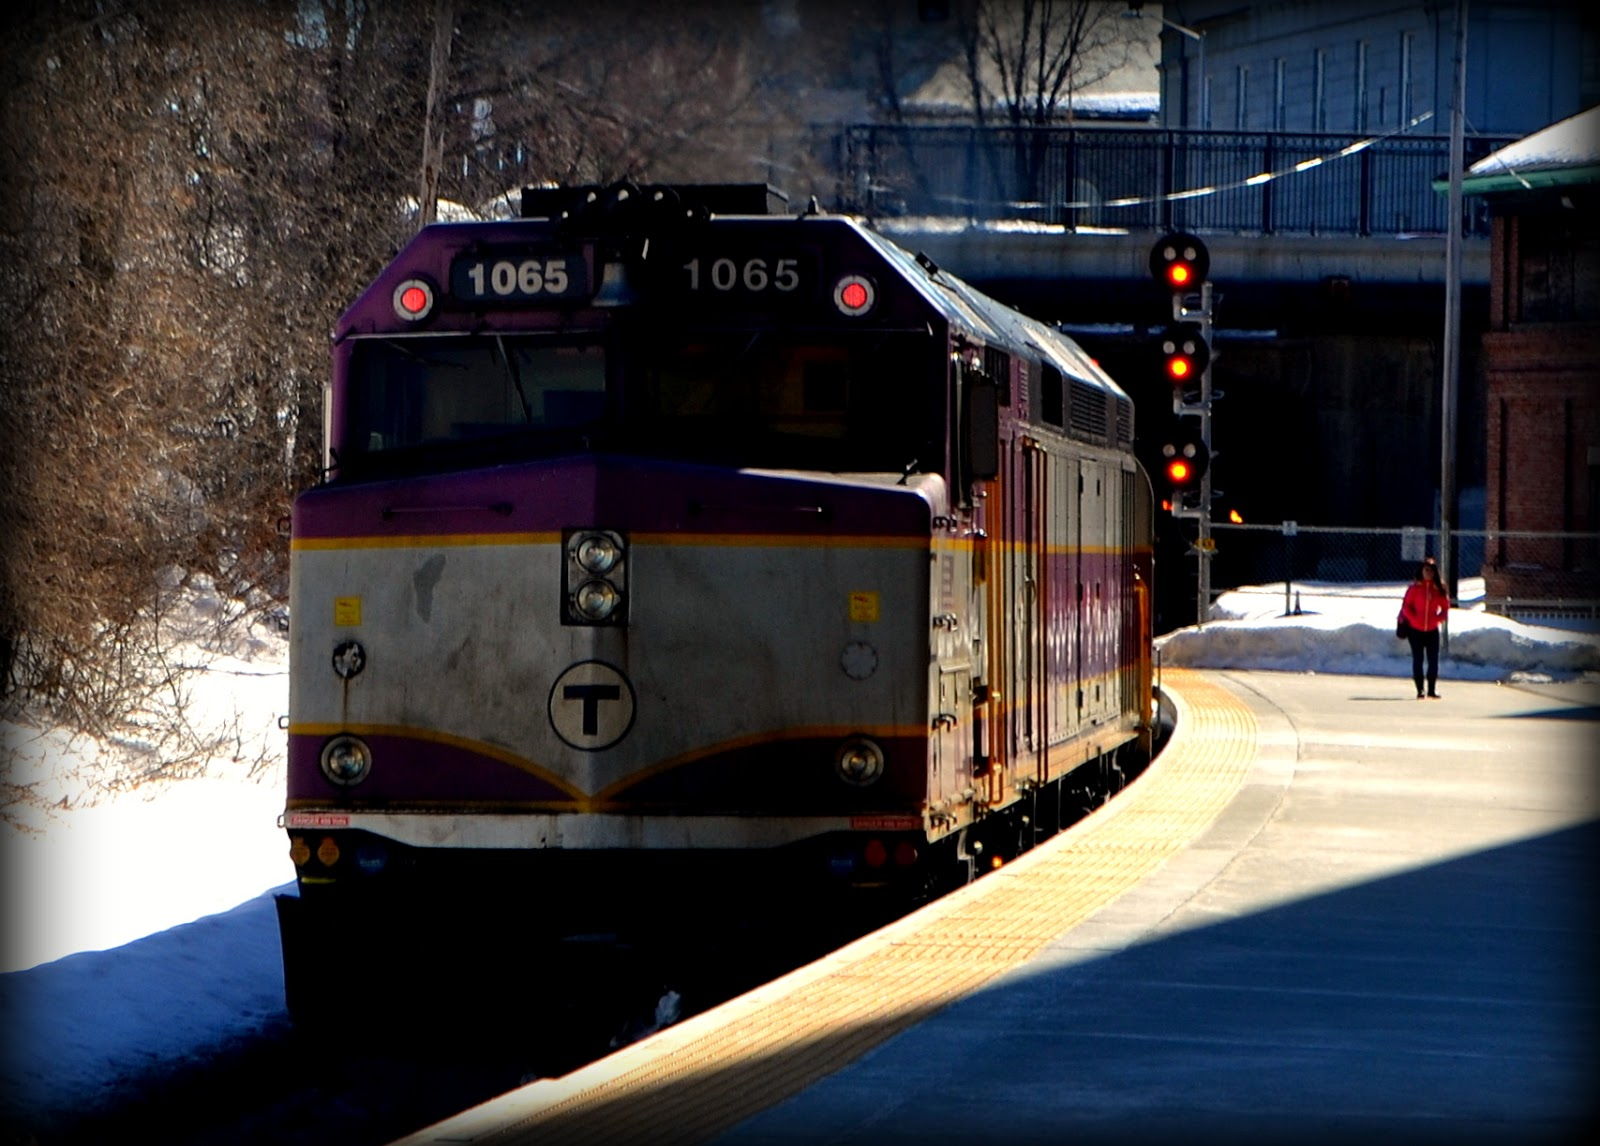 MBTA, Commuter Rail, Station, Salem, Massachusetts, locomotive